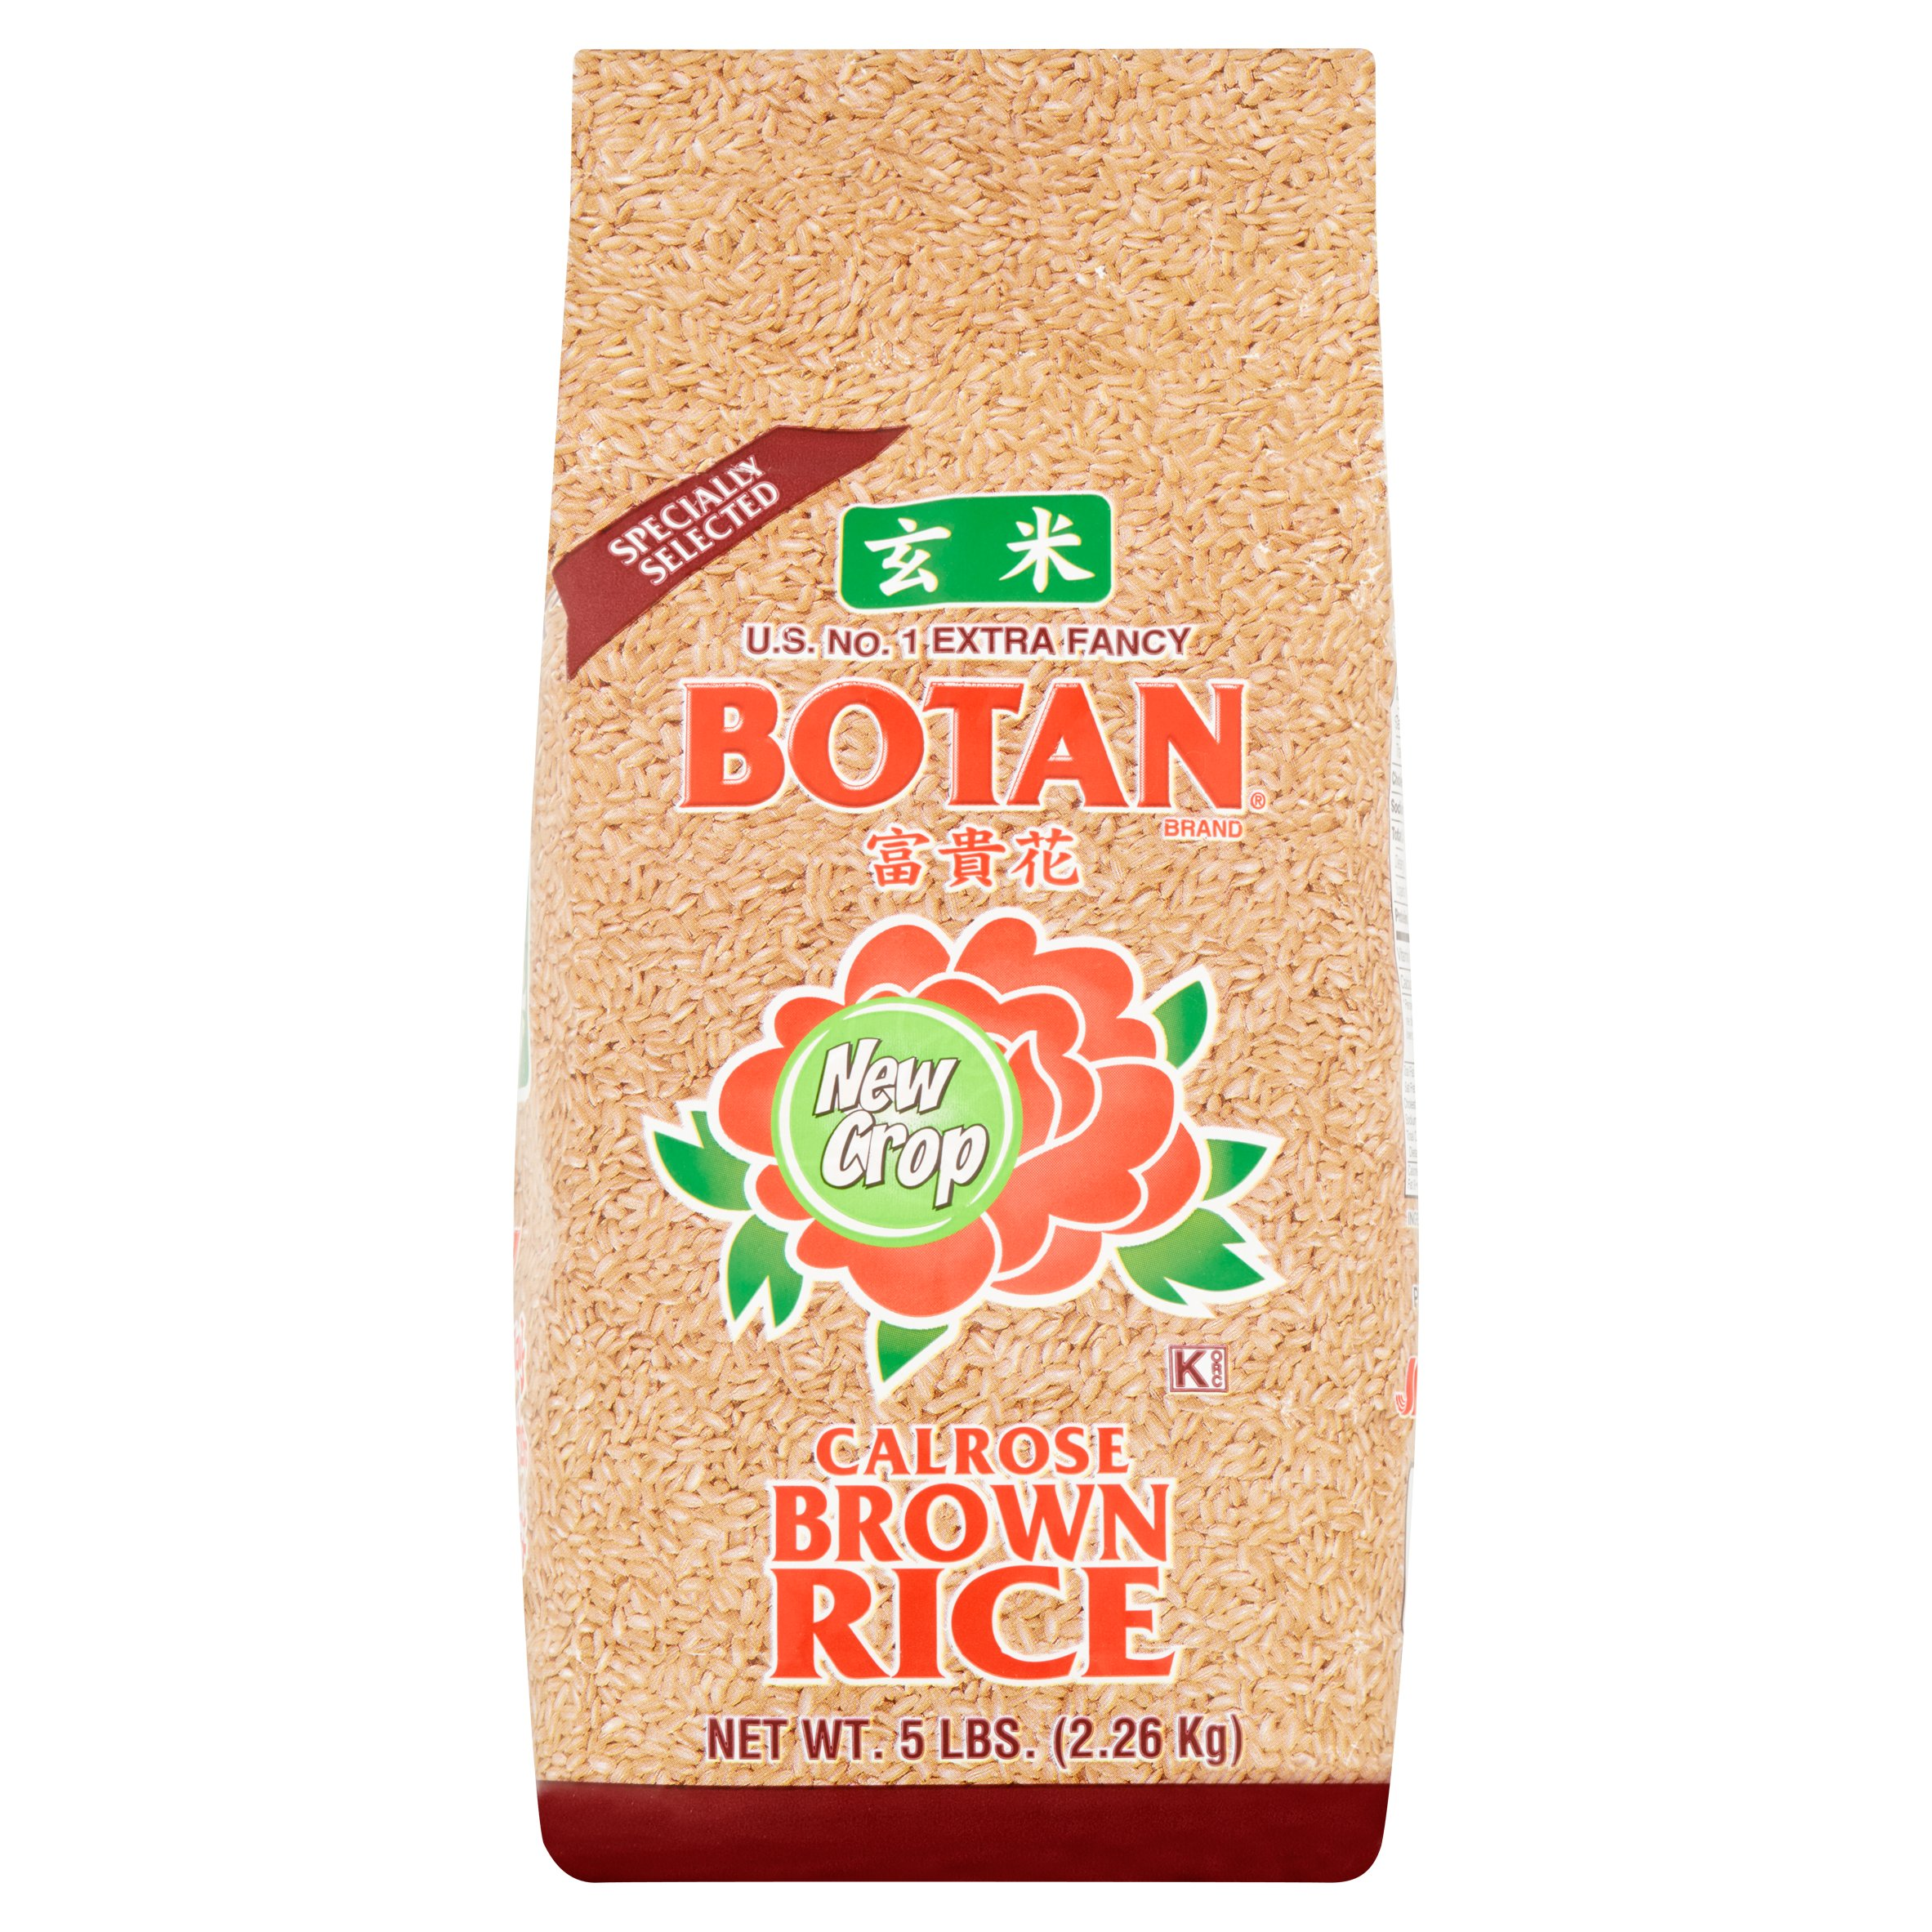 Botan Calrose Brown Rice, 5 lb